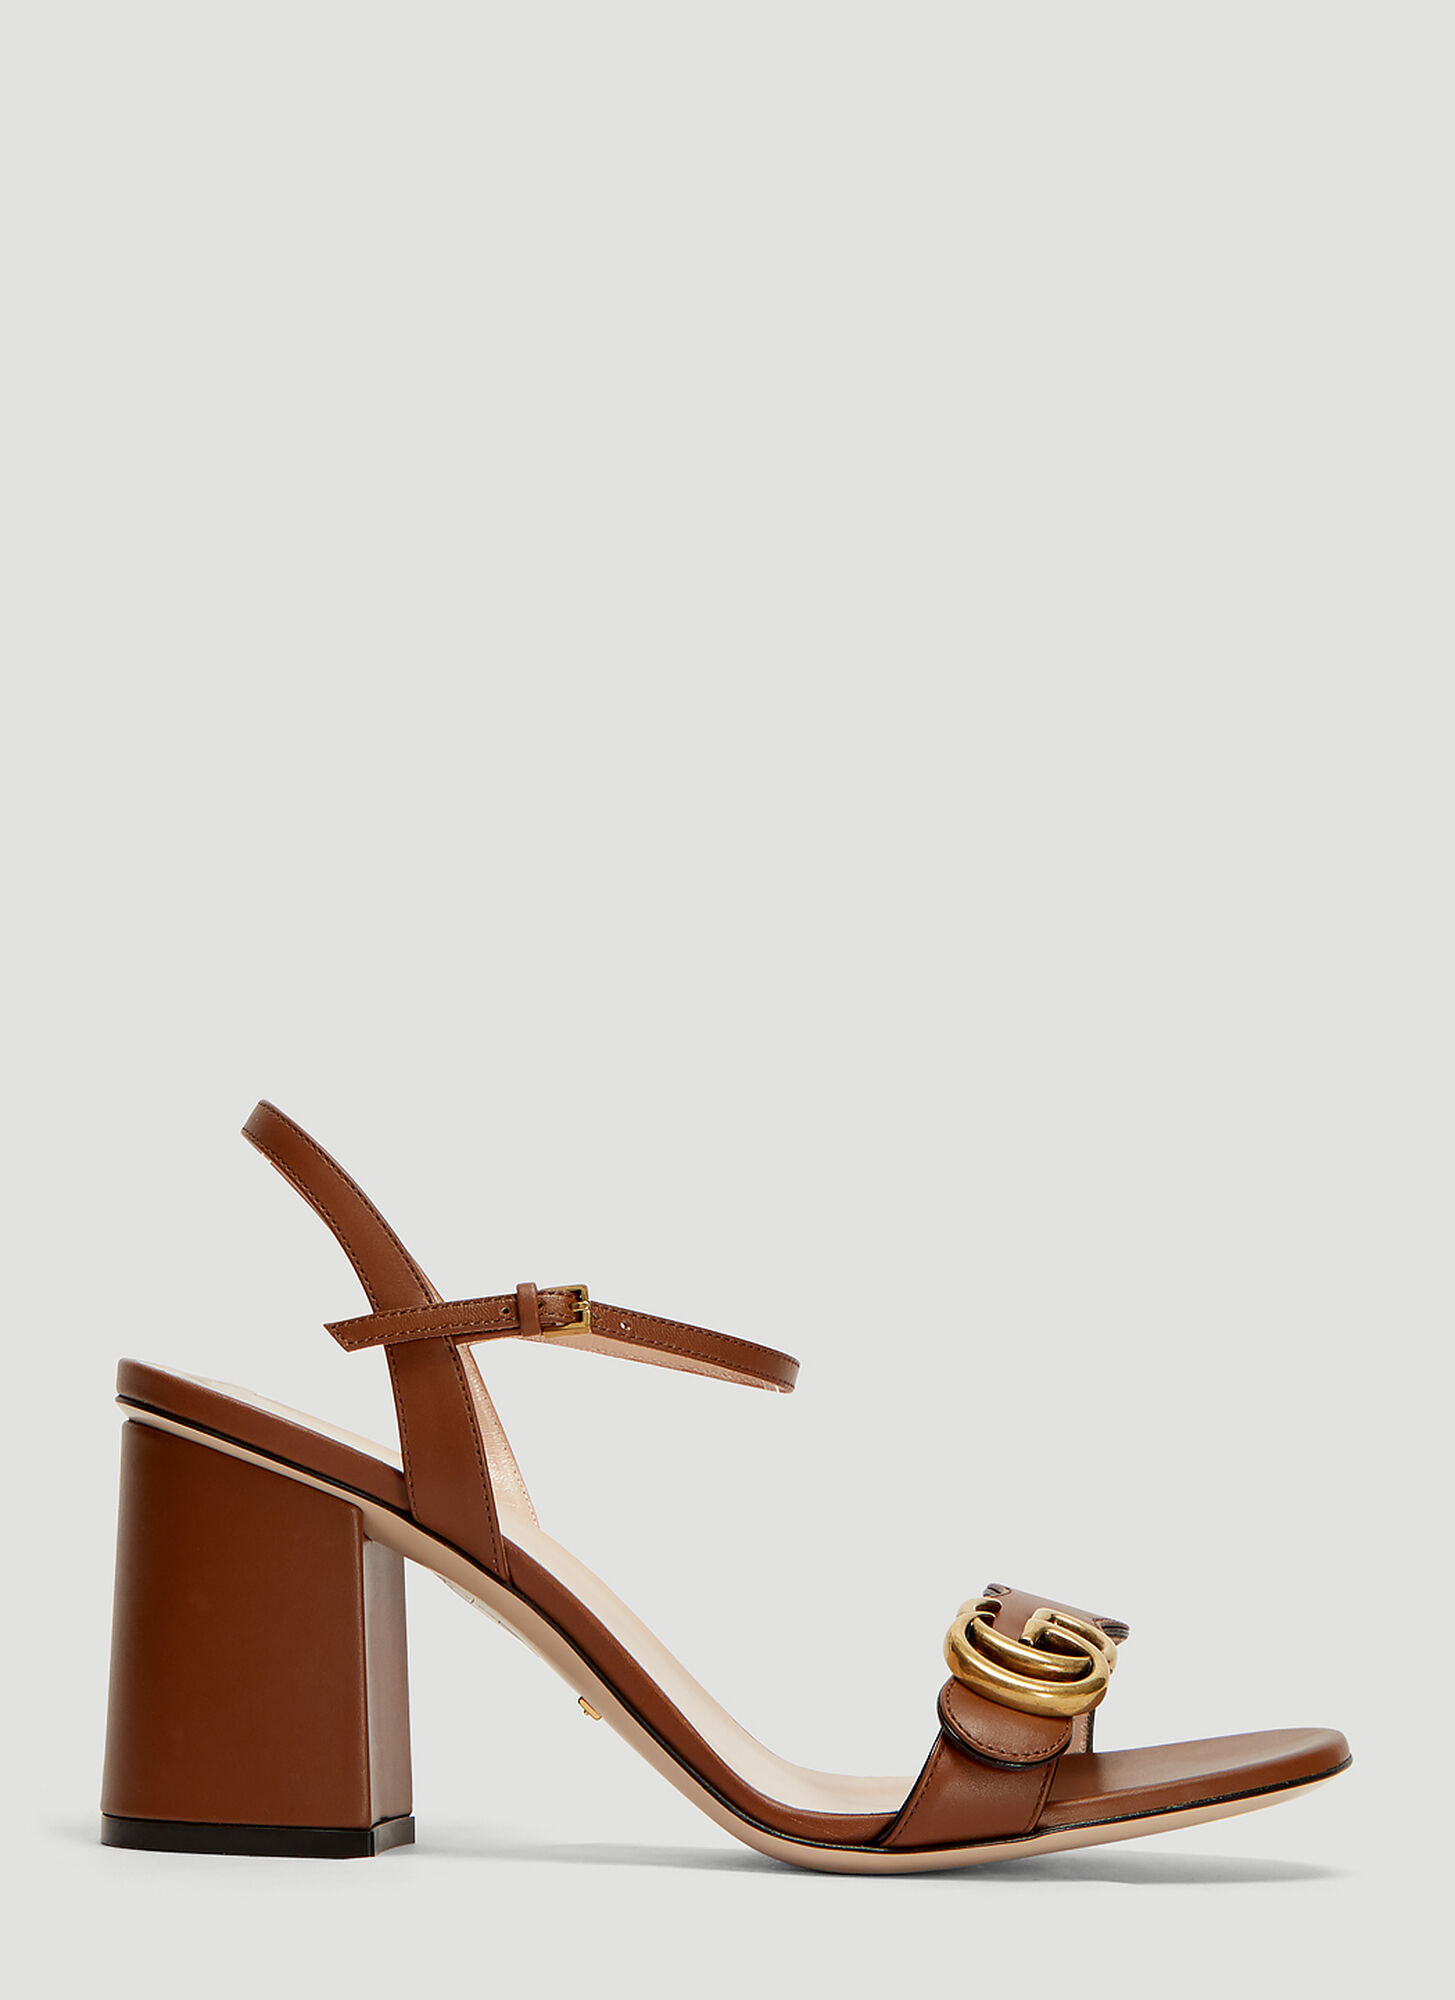 Gucci GG 75 Marmont Sandals in Brown